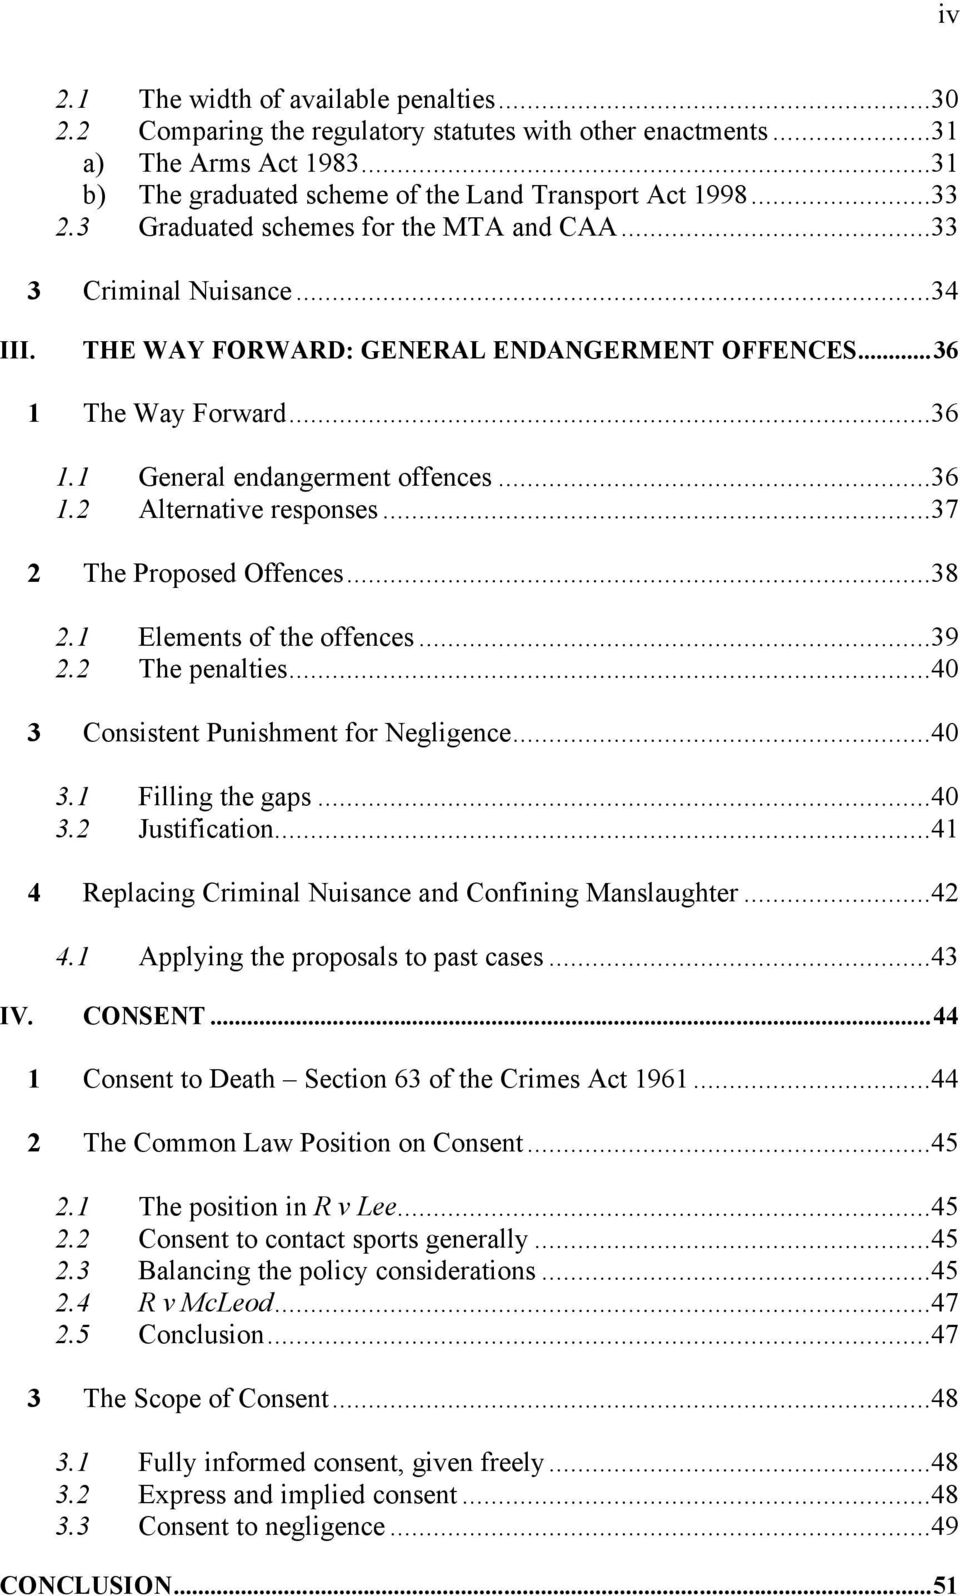 ..37 2 The Proposed Offences...38 2.1 Elements of the offences...39 2.2 The penalties...40 3 Consistent Punishment for Negligence...40 3.1 Filling the gaps...40 3.2 Justification.